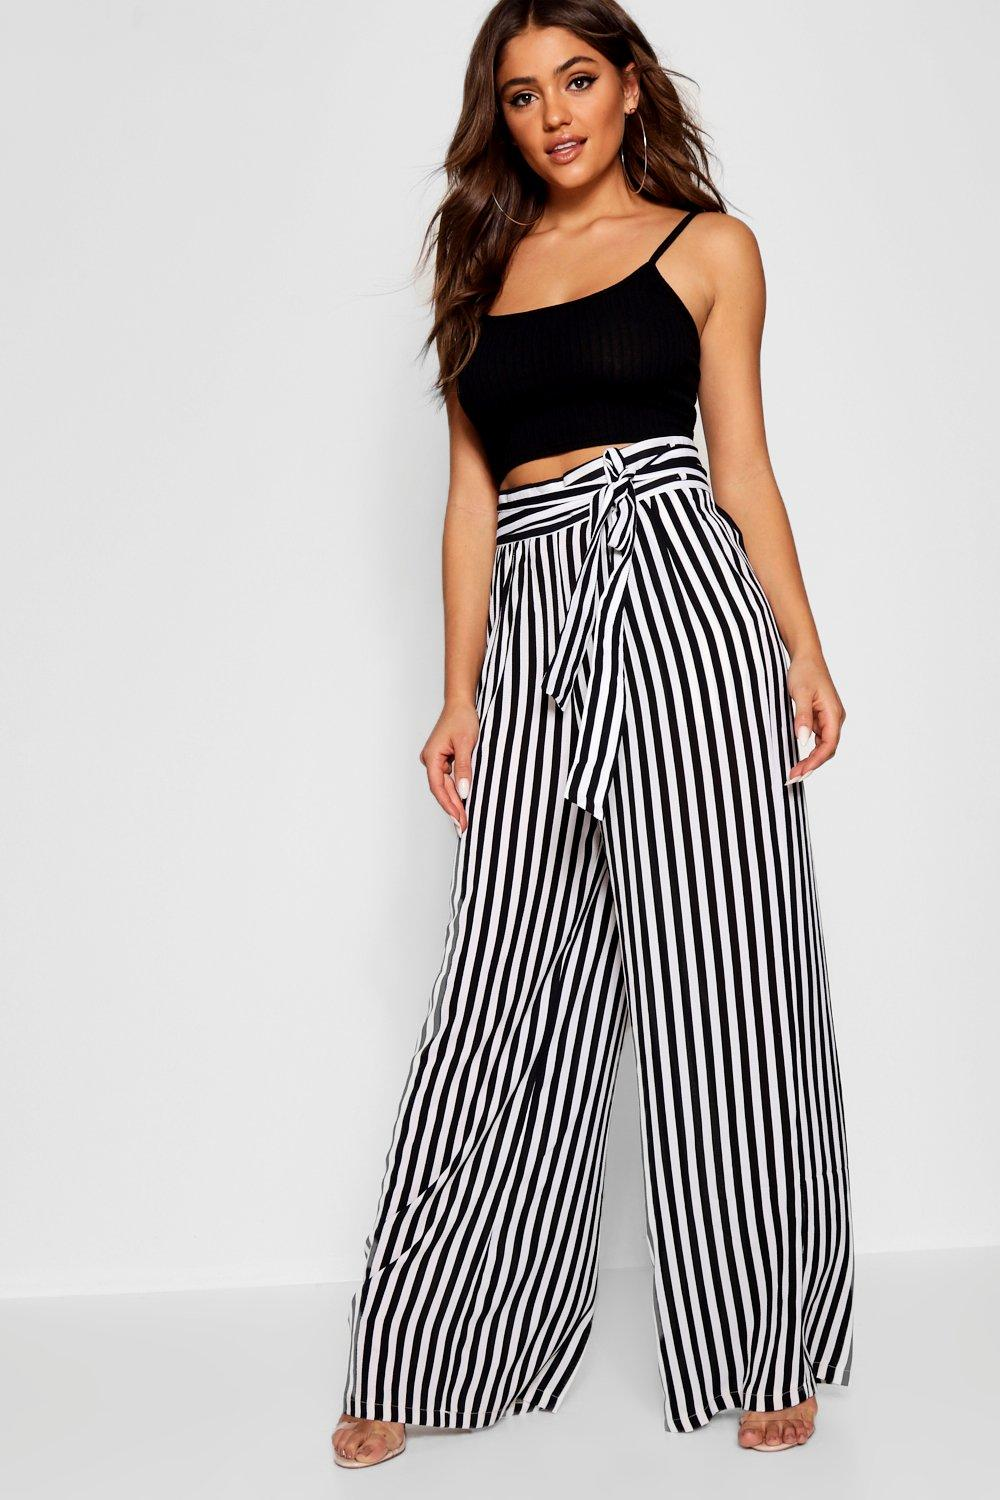 23949c7c30 Womens Black Tie Waist Striped Wide Leg Pants. Hover to zoom